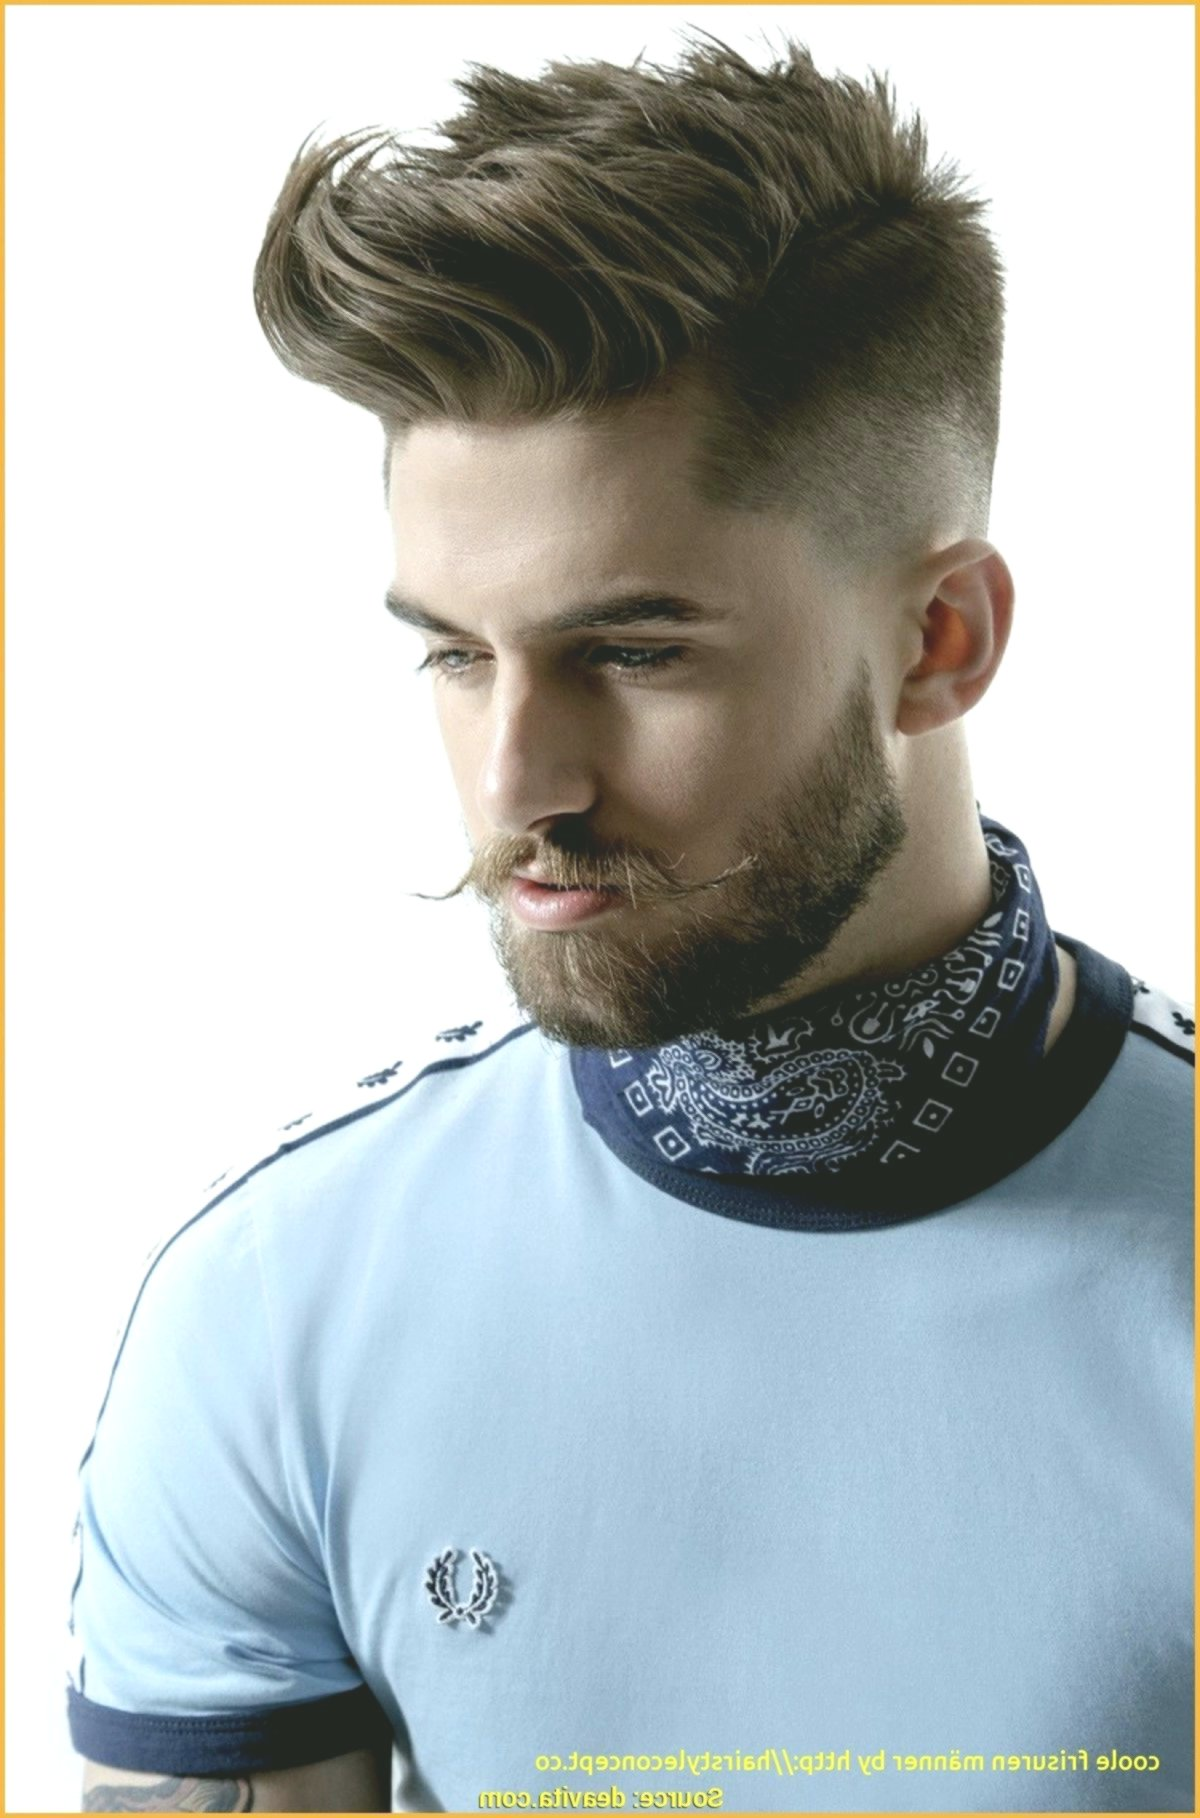 Inspirational Short Hairstyles with Sidecut Pattern Fresh Short Hairstyles With Sidecut Concepts